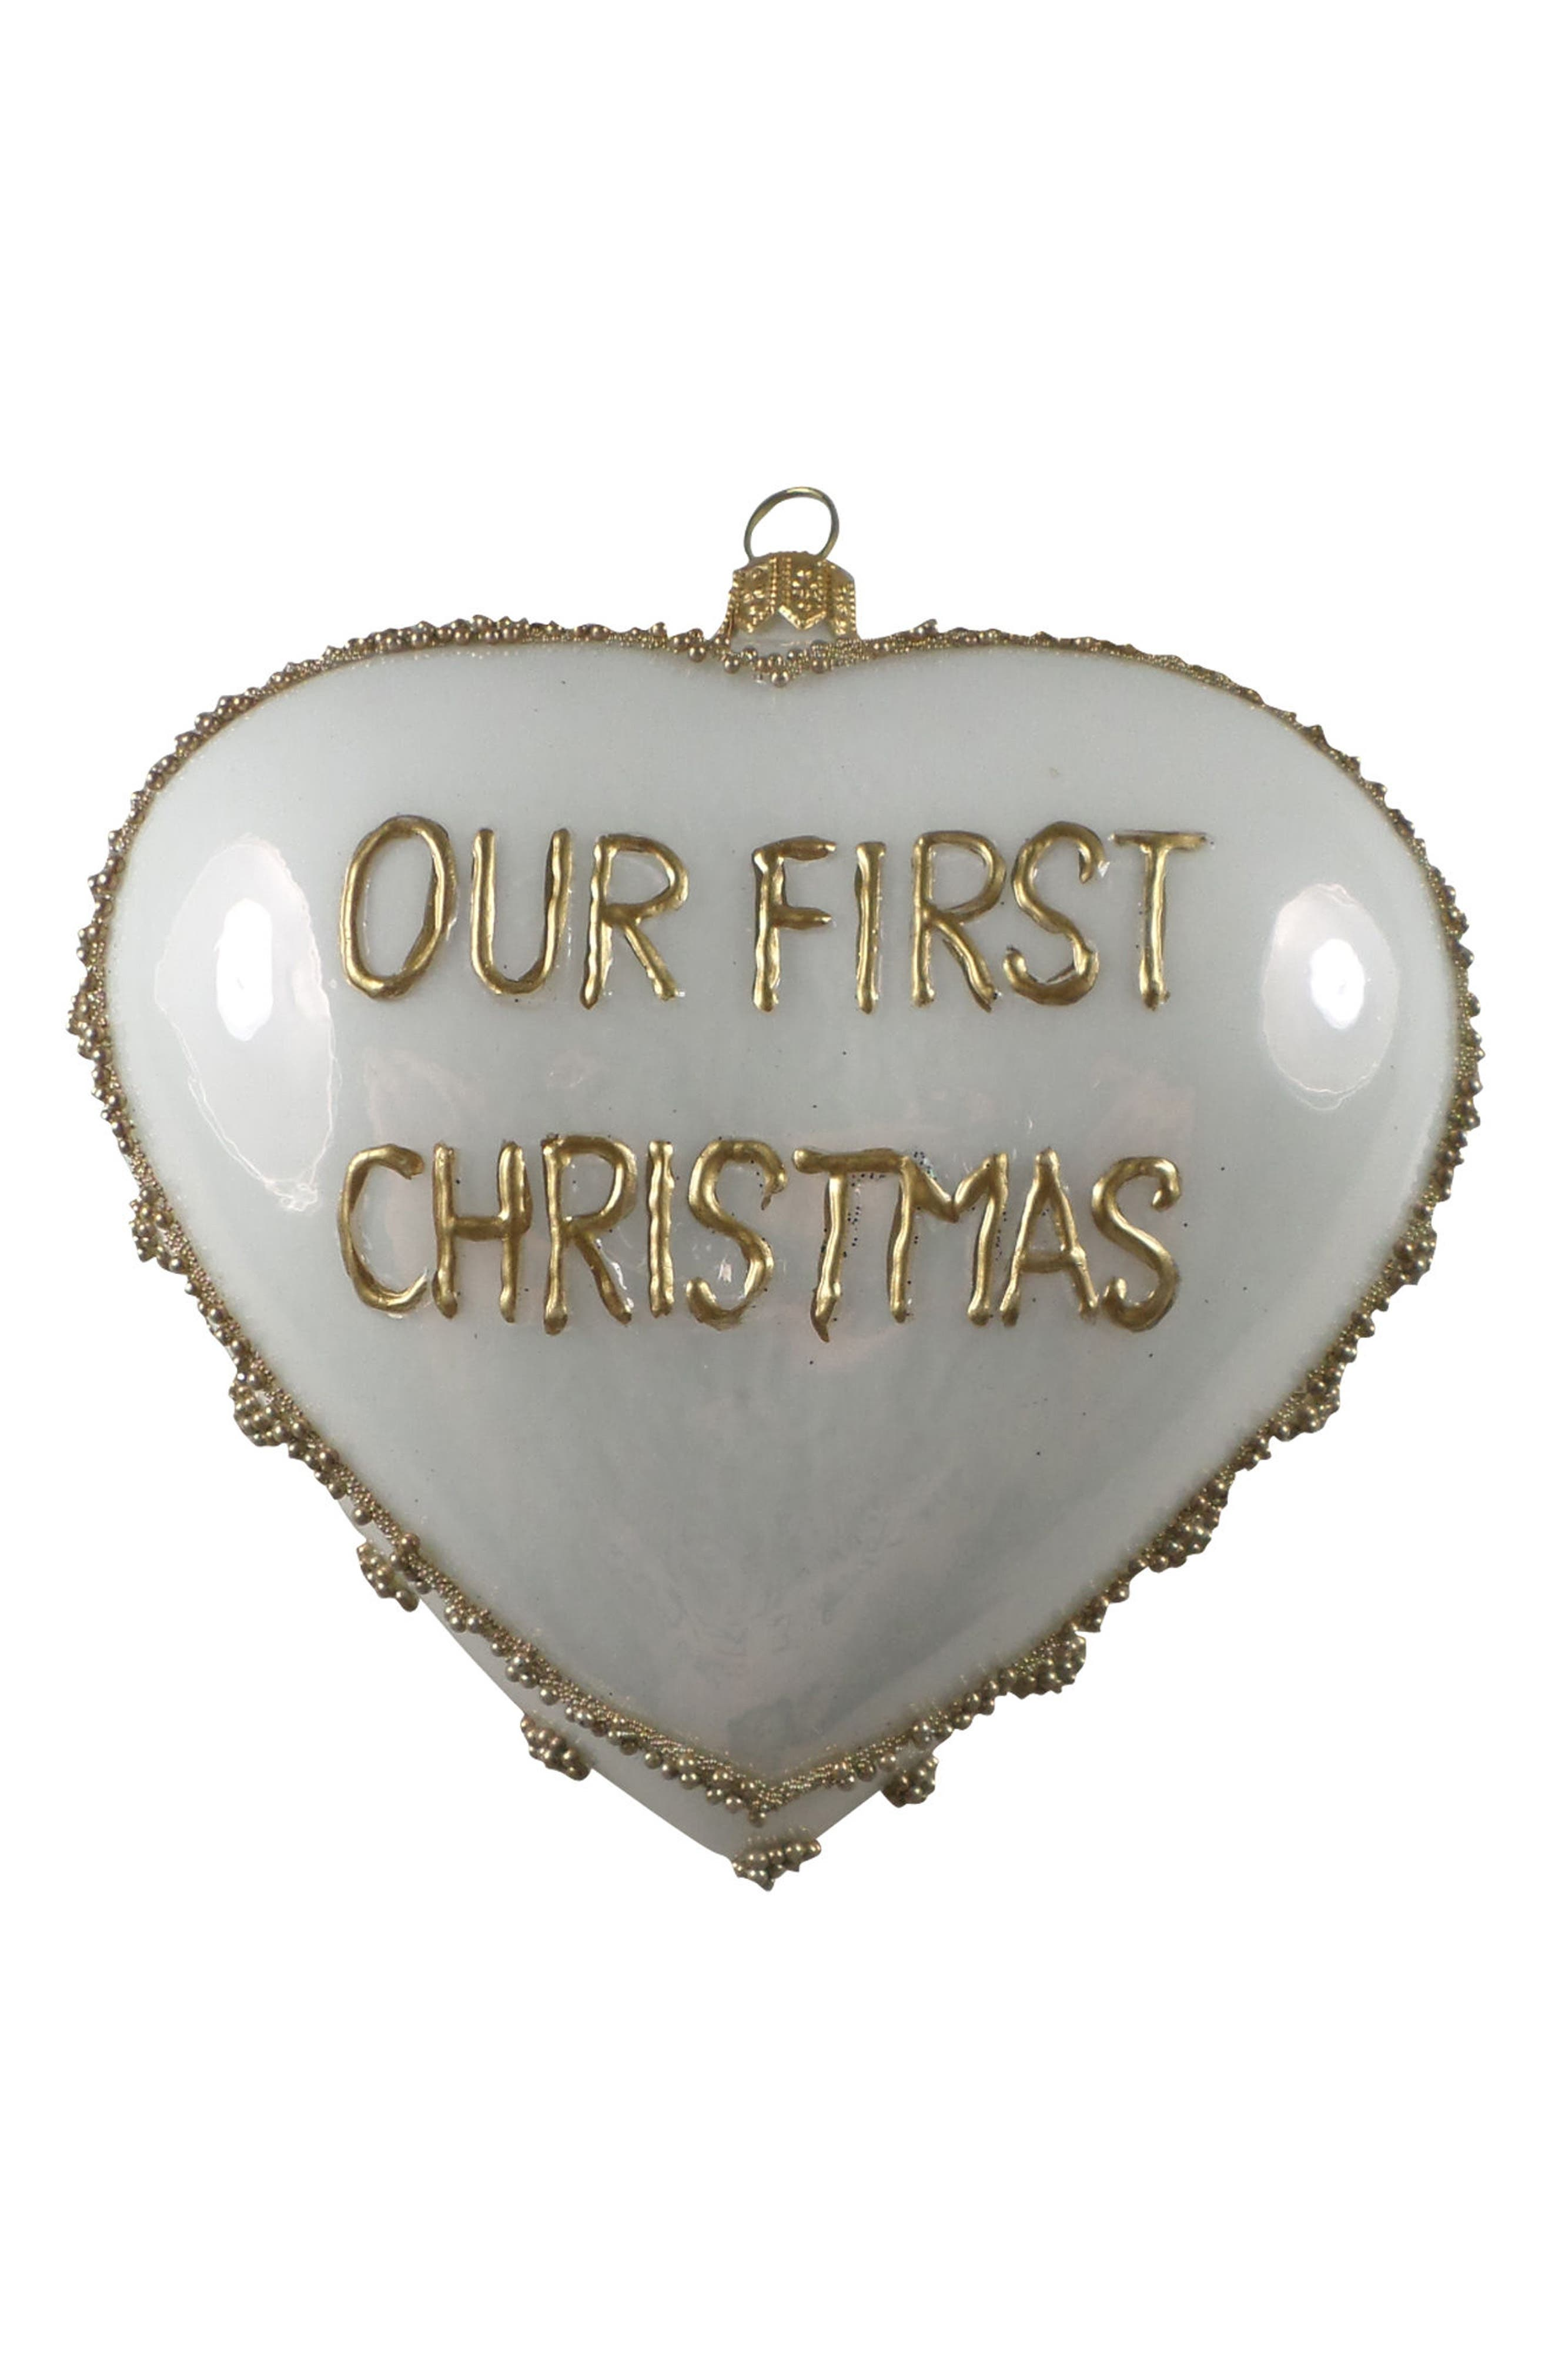 Alternate Image 1 Selected - Nordstrom at Home Our First Christmas Handblown Glass Heart Ornament